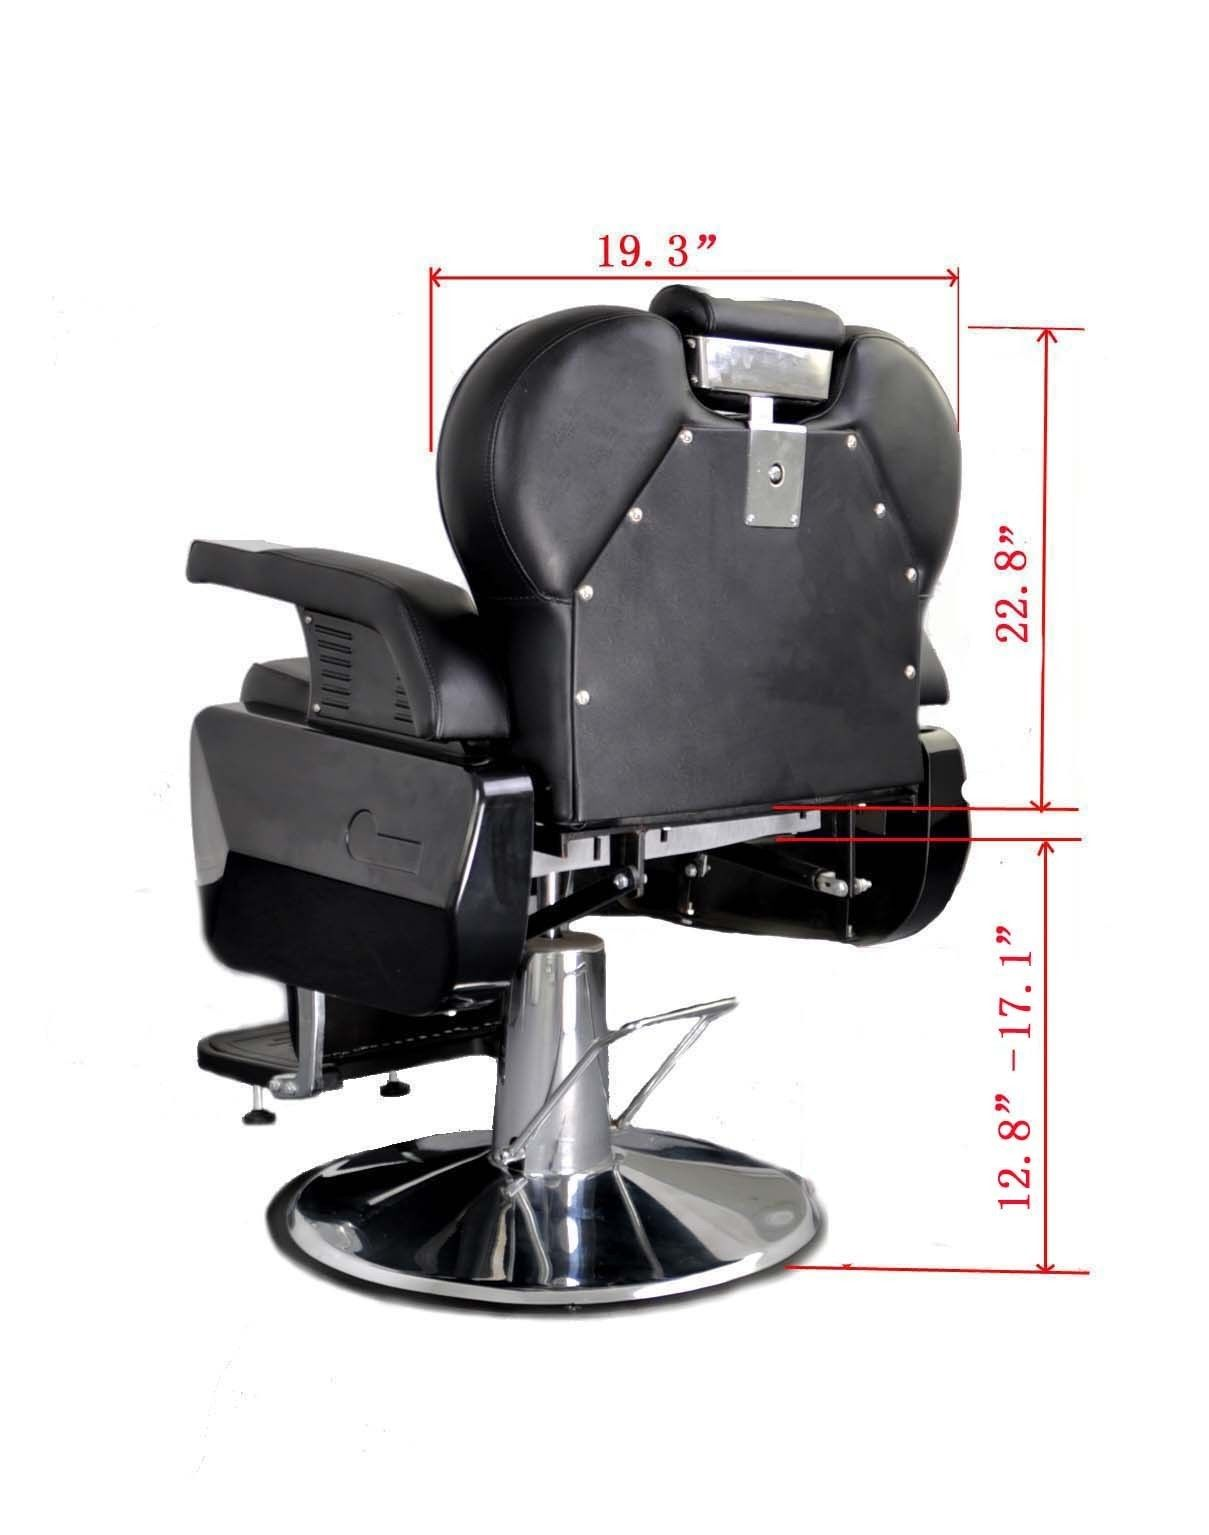 BarberPub All Purpose Hydraulic Recline Barber Chair Salon Beauty Spa 8702 Brown 17